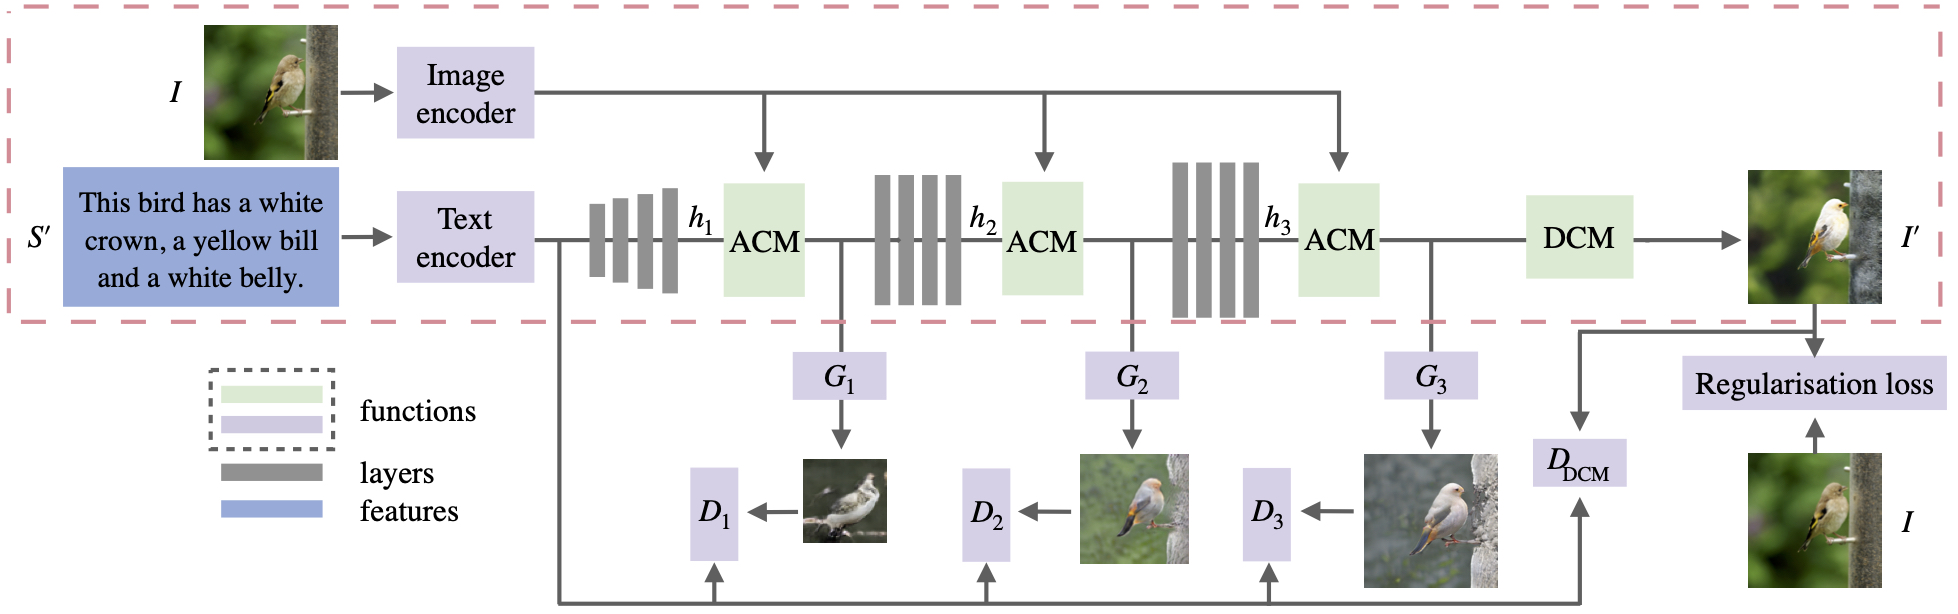 ManiGAN: Text-Guided Image Manipulation | Papers With Code